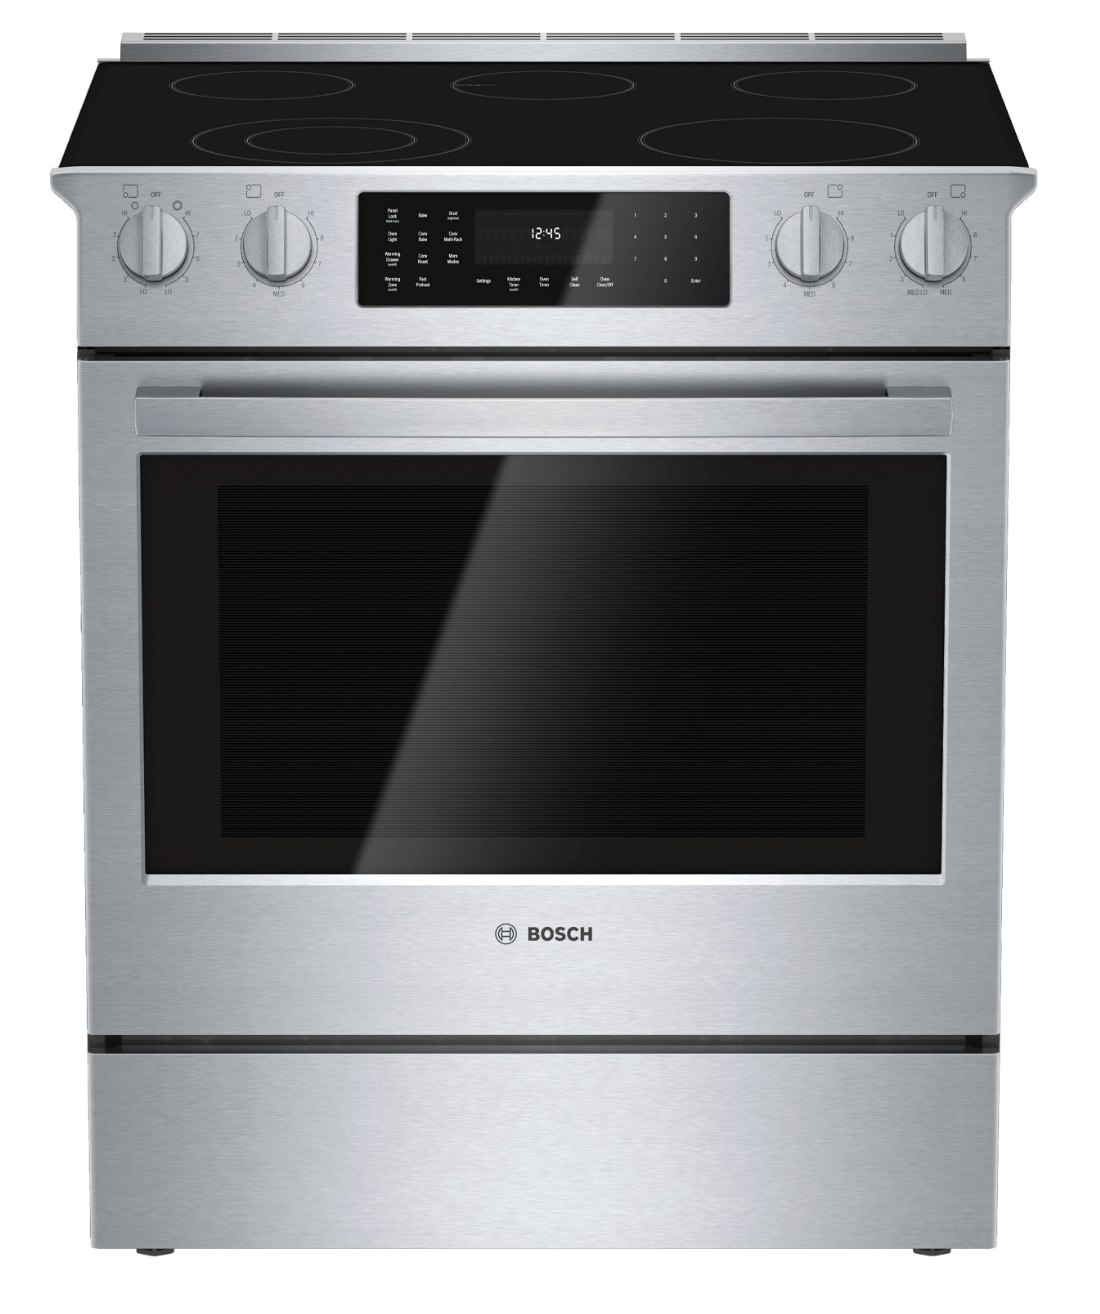 "BOSCH'S 30"" ELECTRIC RANGE  is a well-known slide in range, perfect for kitchen islands."